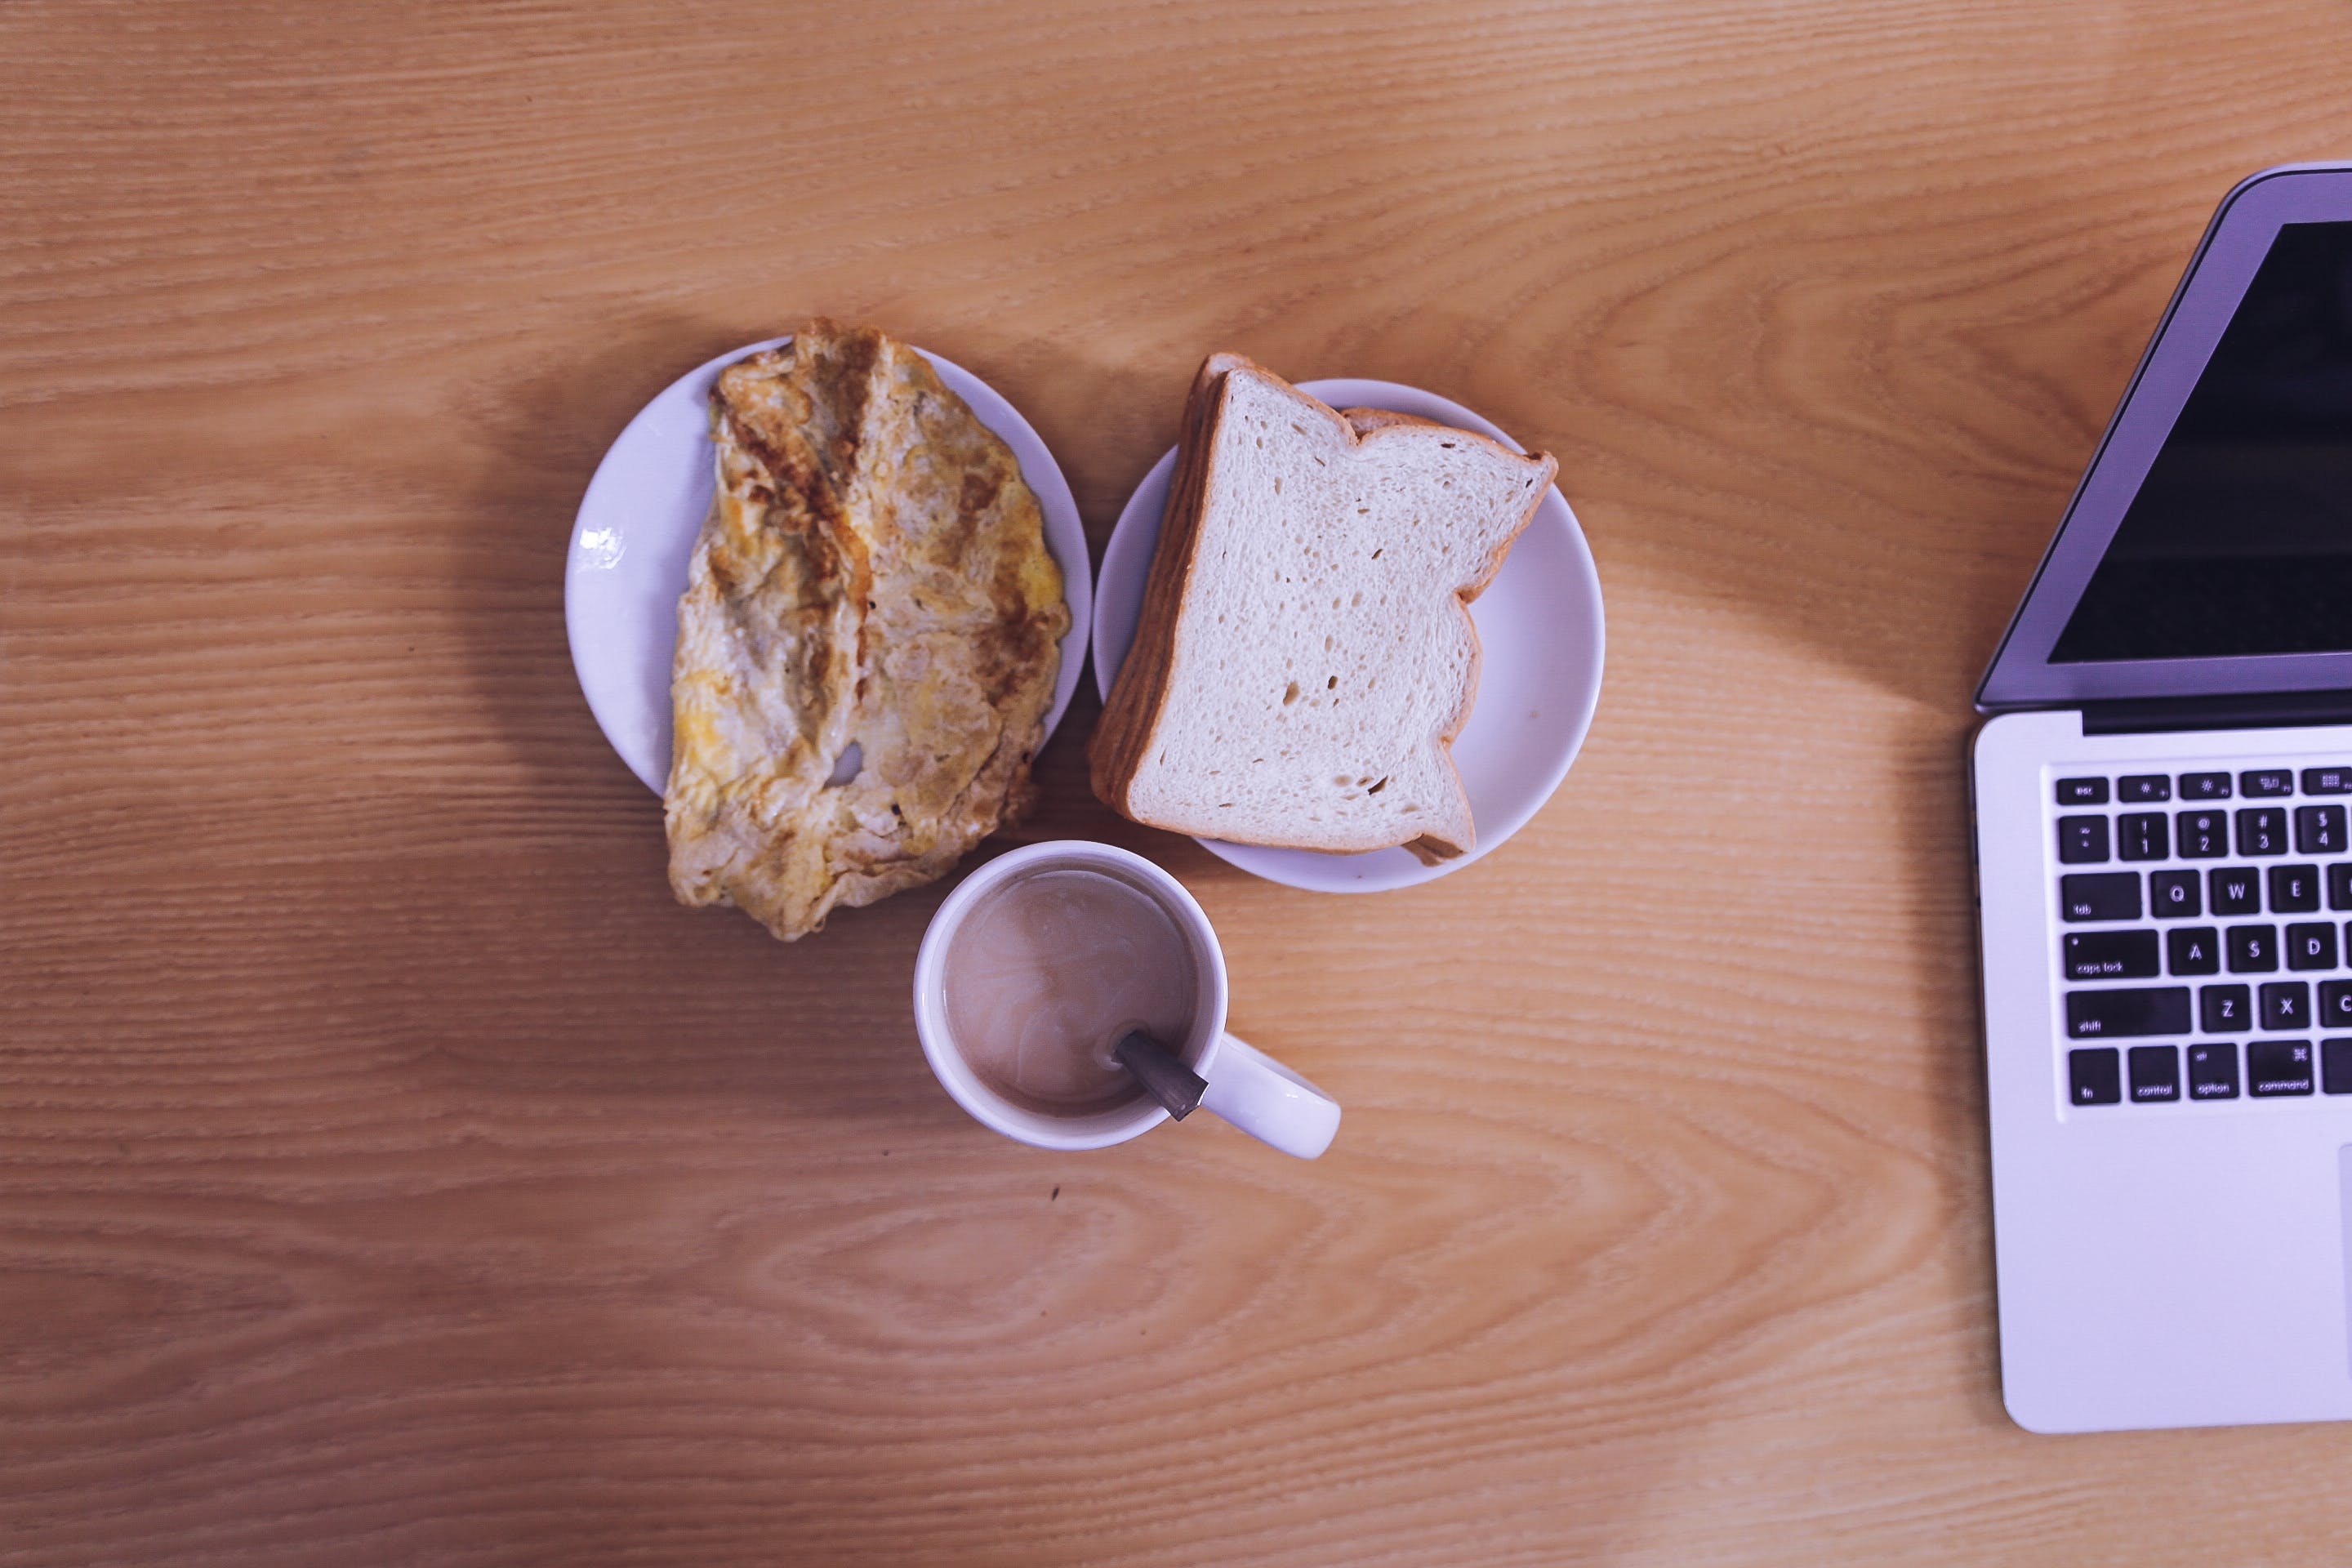 White Ceramic Mug Beside Bread on White Ceramic Saucer